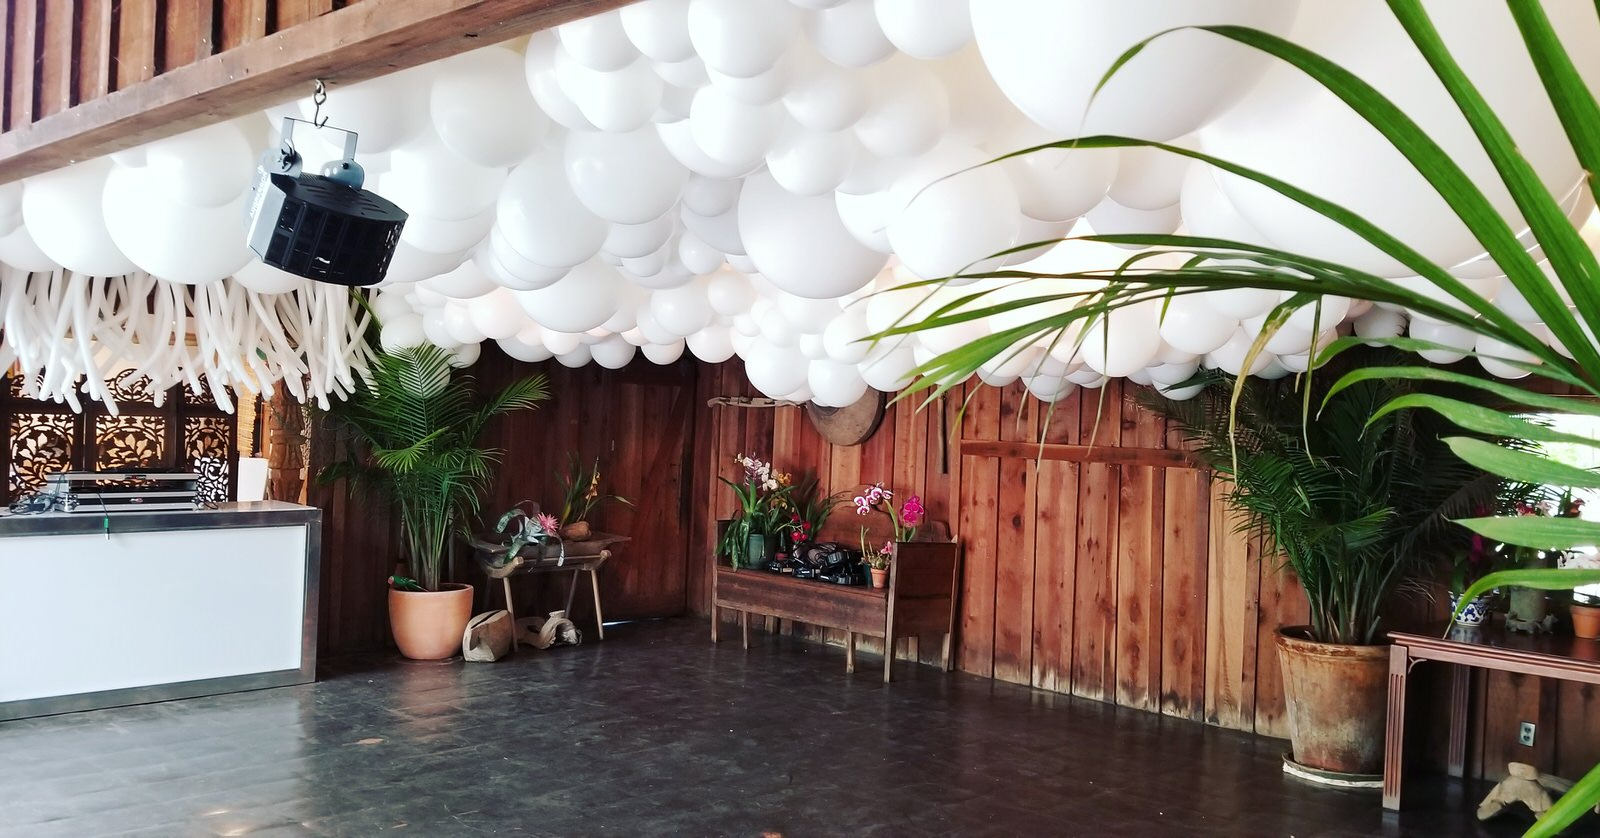 Balloon Cloud Ceiling with Squiggle Balloons DJ Booth - Zim Balloons SF Balloons.jpg